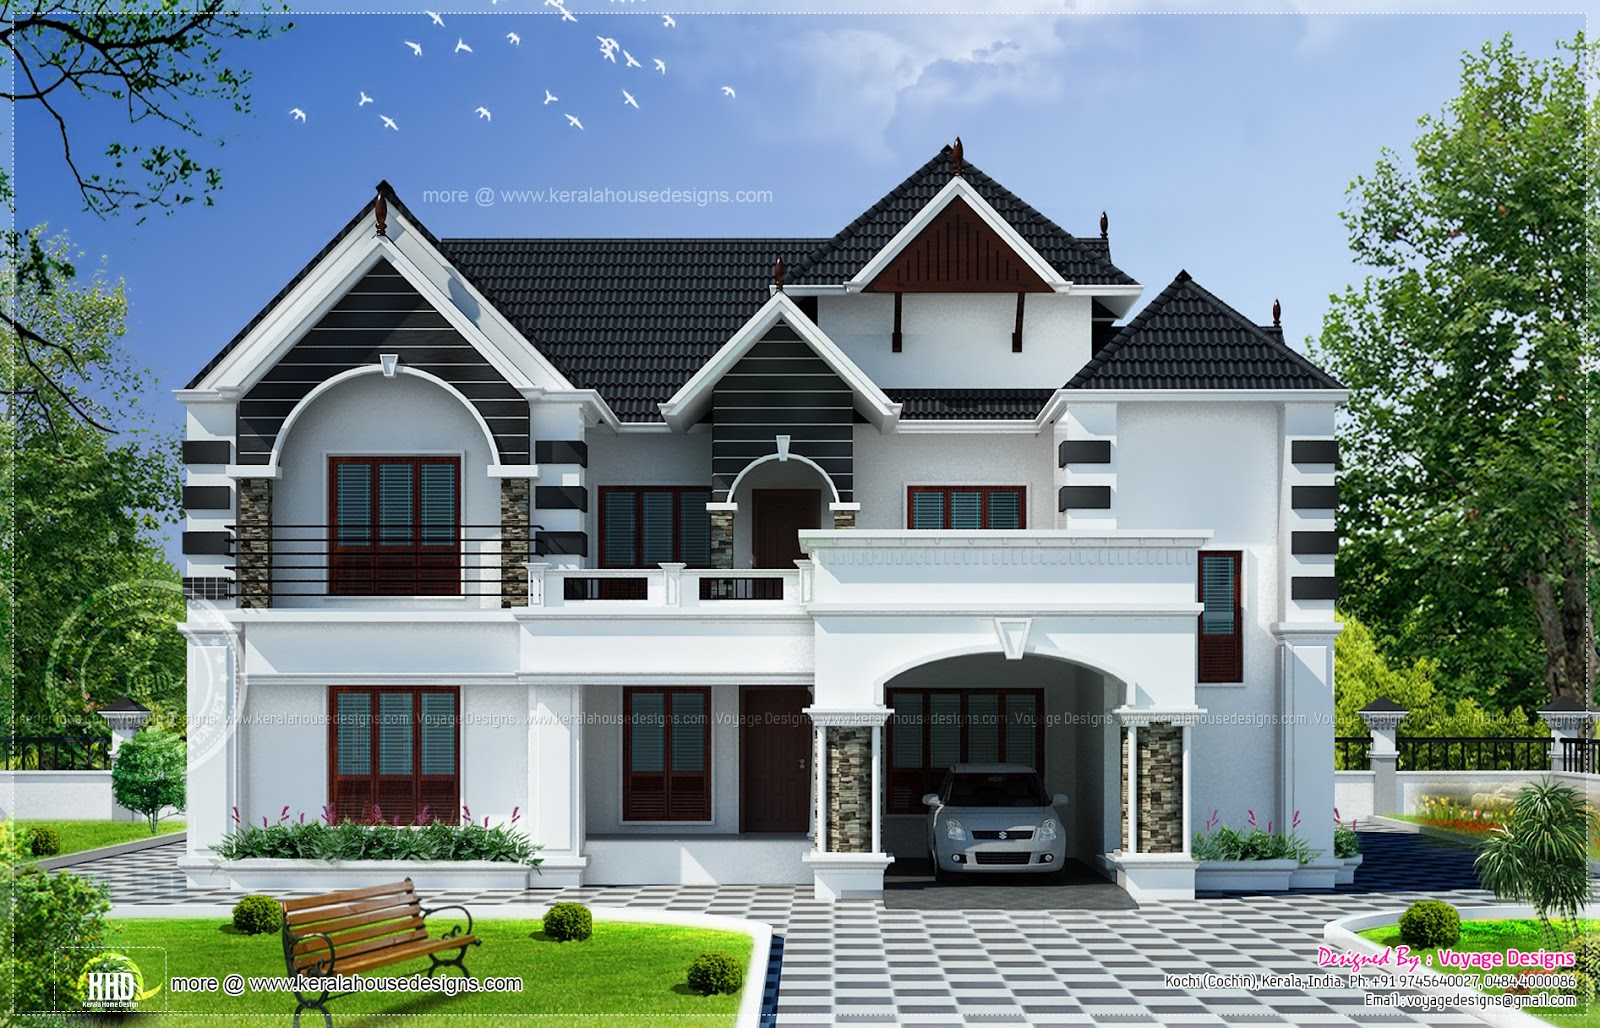 4 bedroom colonial style house kerala home design and Small house indian style